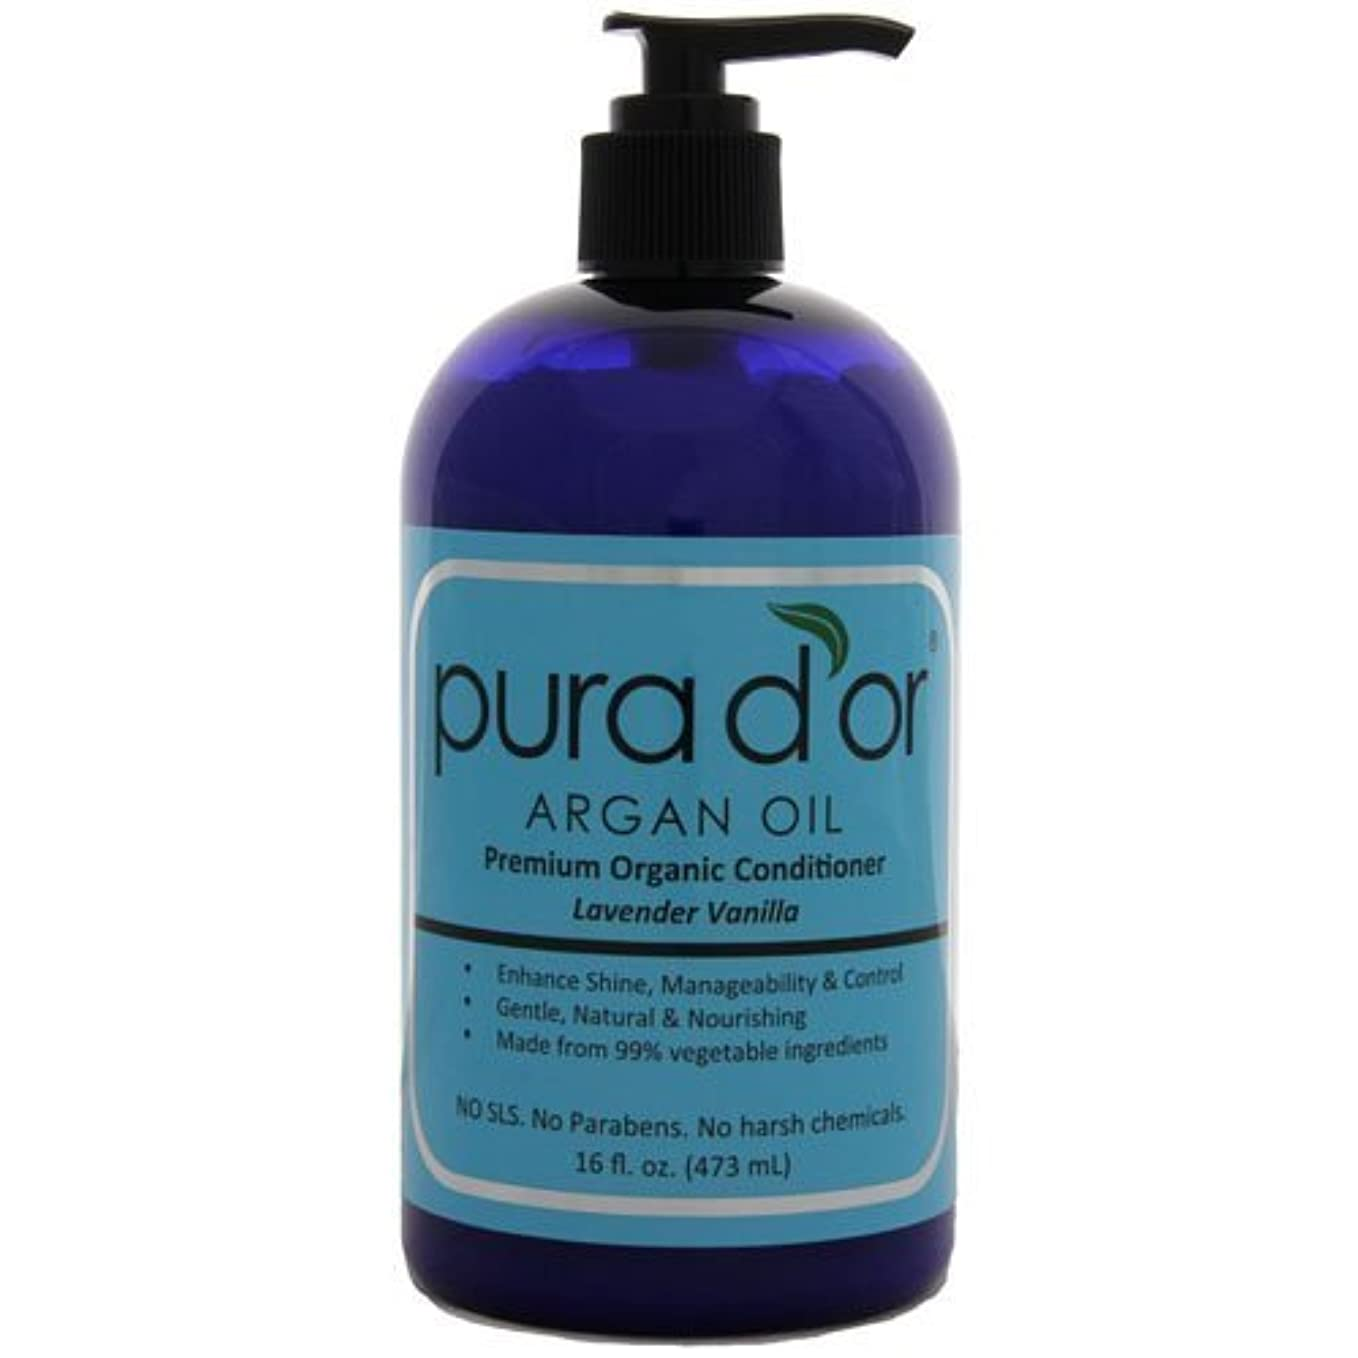 申し込む不満ミニチュアPura d'or: Premium Organic Argan oil Conditioner for Hair (16 fl. oz.) by Pura D'or [並行輸入品]